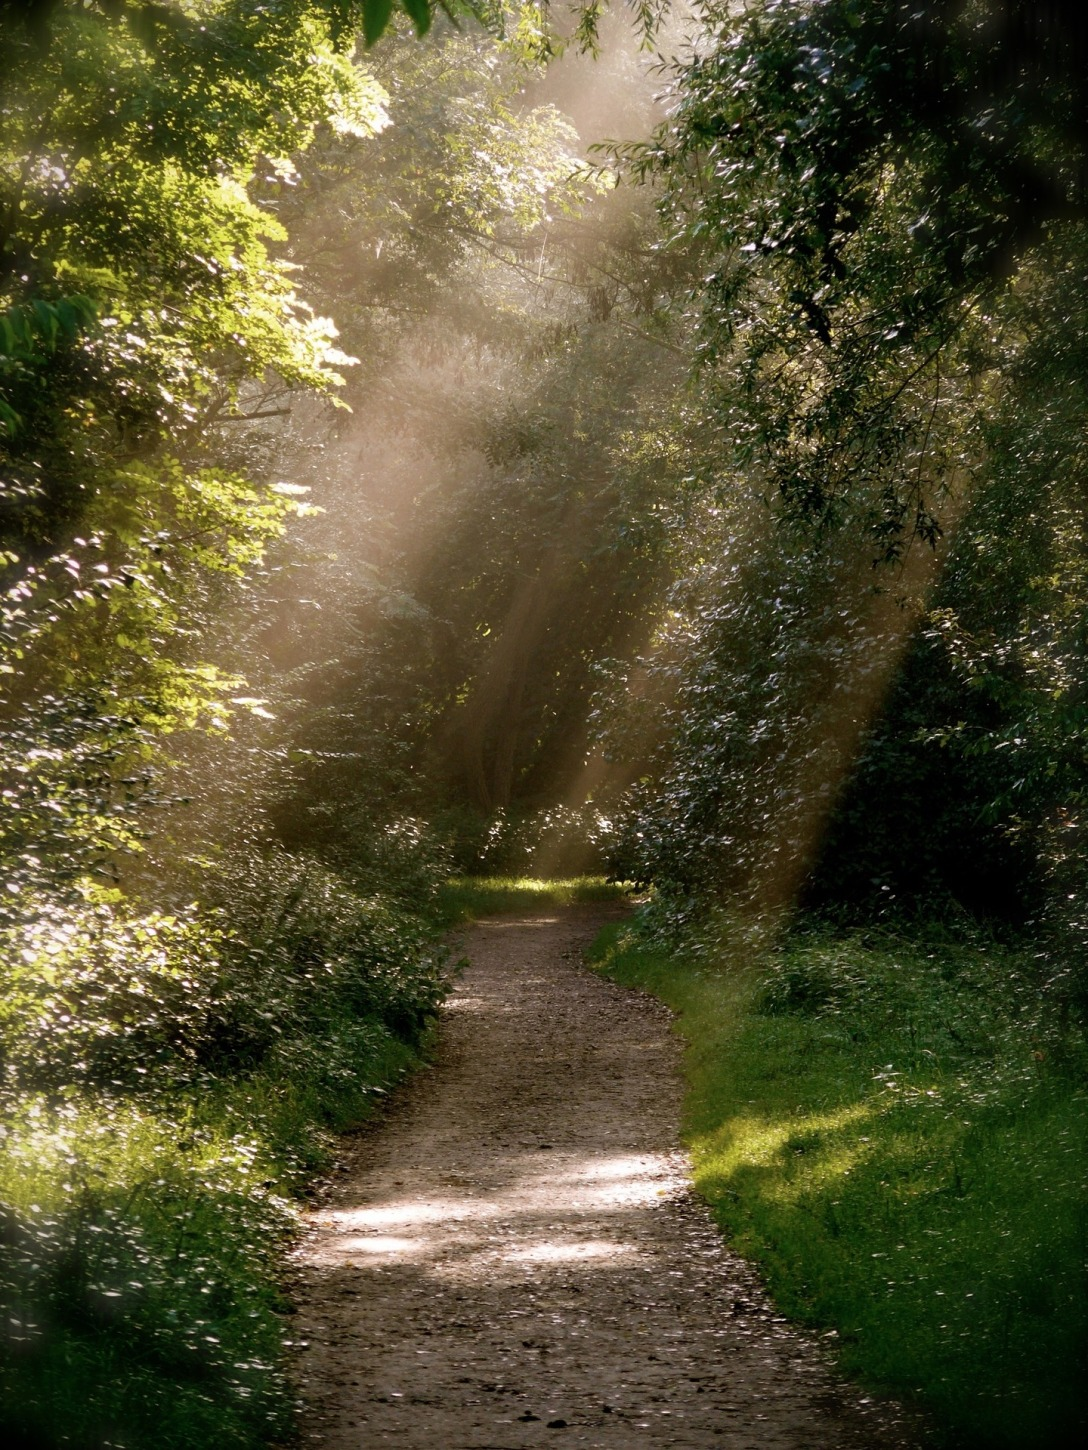 forest-path-979292_1920